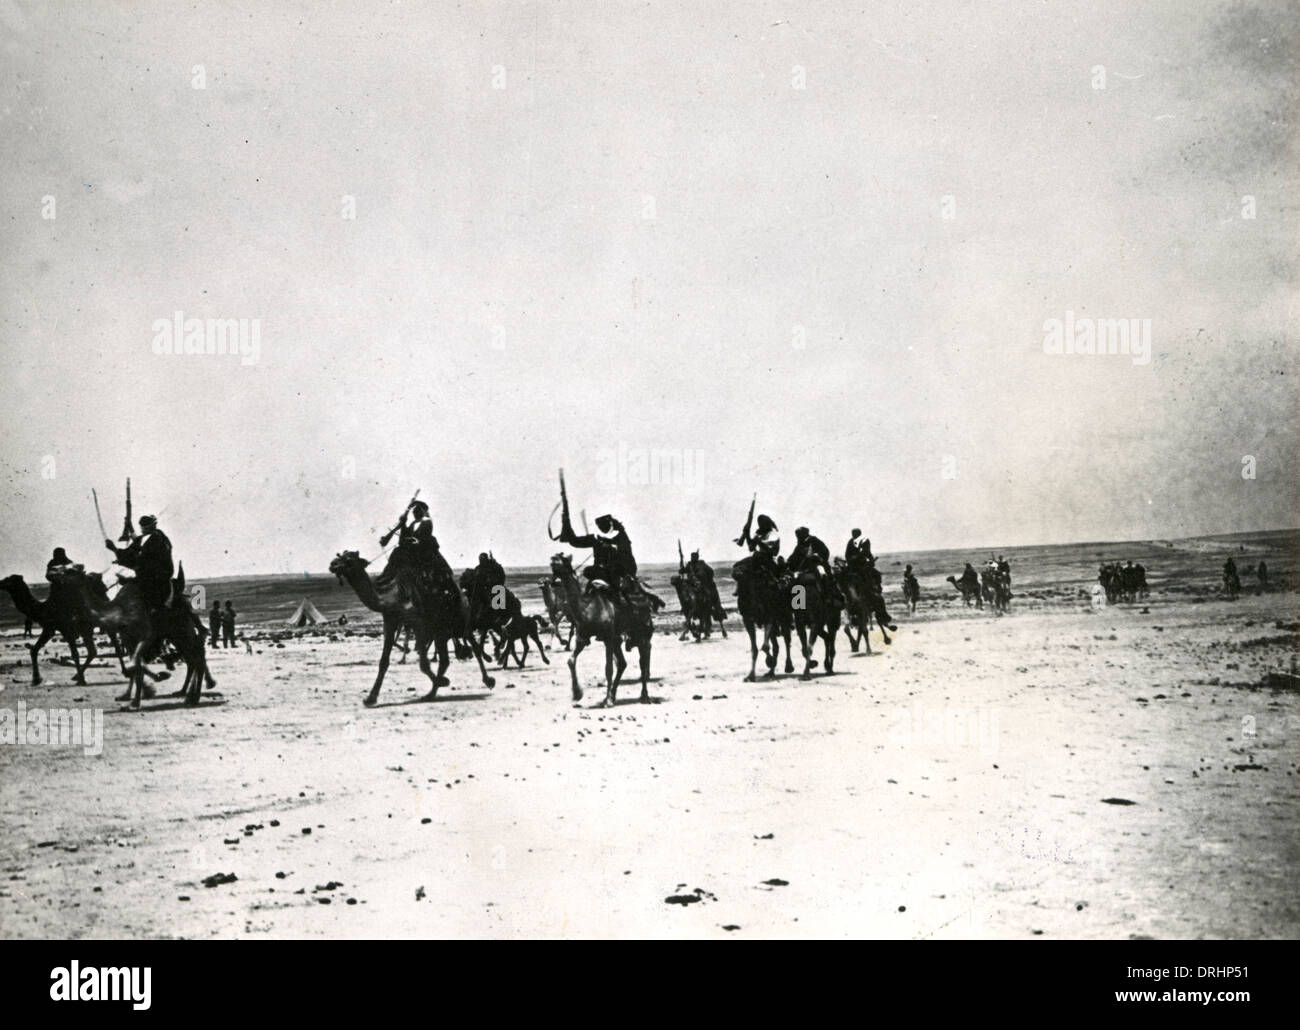 Arabs riding camels in the desert, Palestine, WW1 Stock Photo